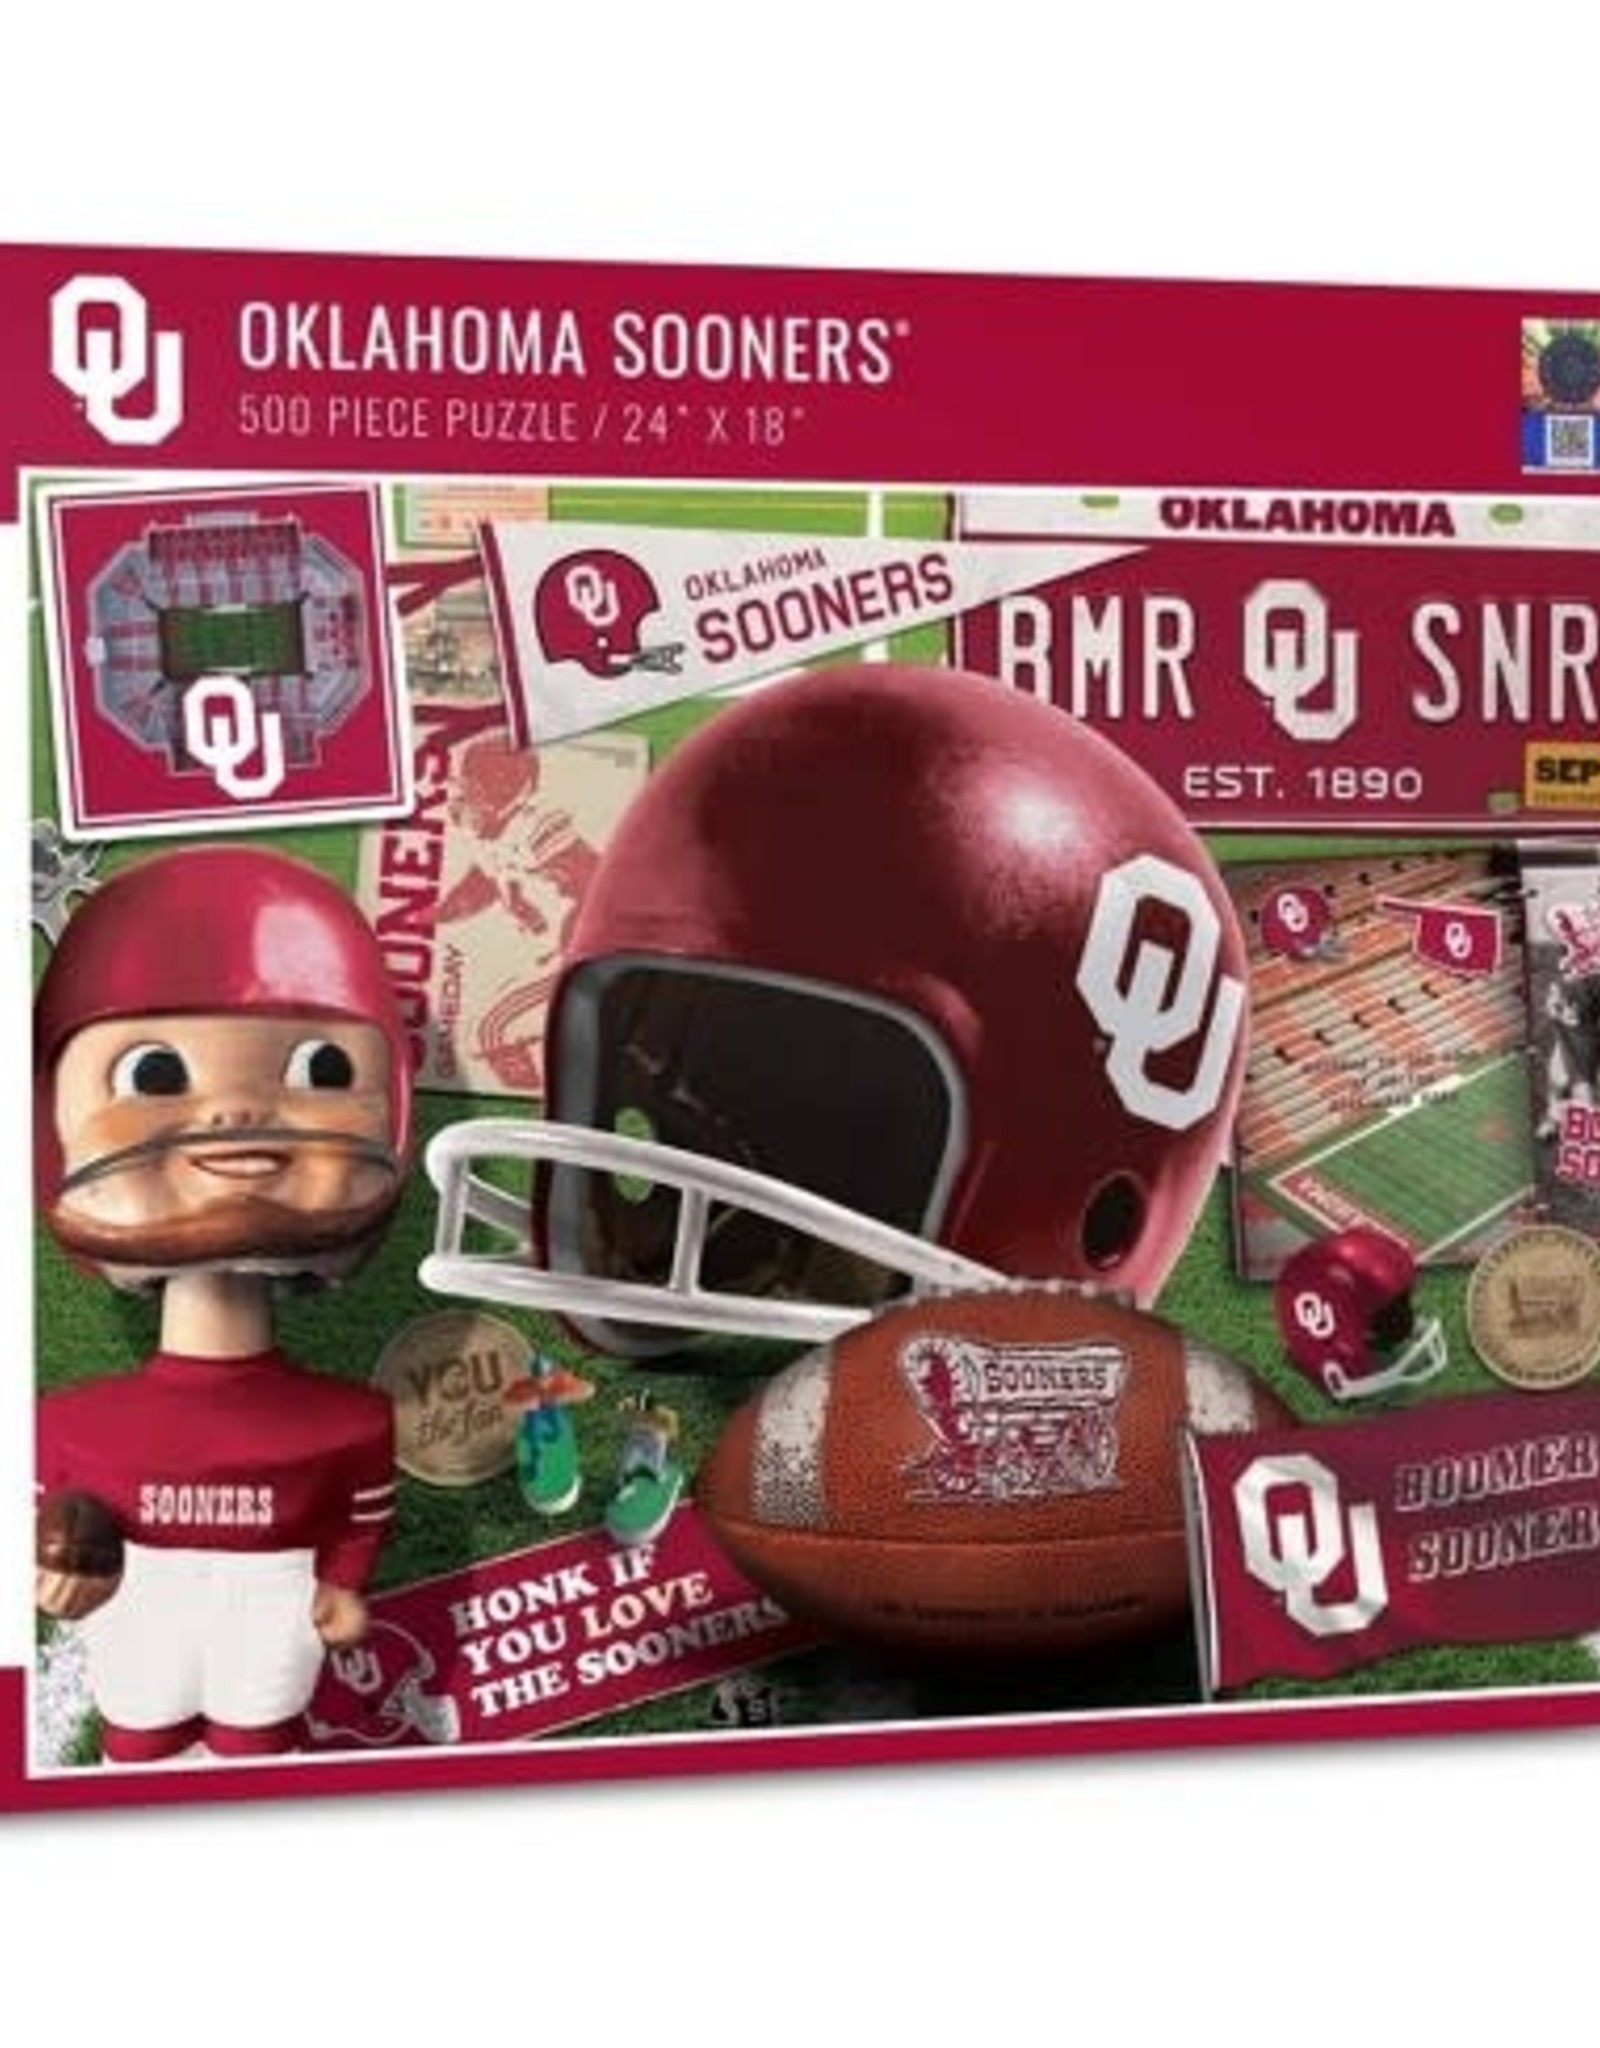 """You The Fan Oklahoma Sooners 24""""x18"""" 500 Piece Puzzle"""